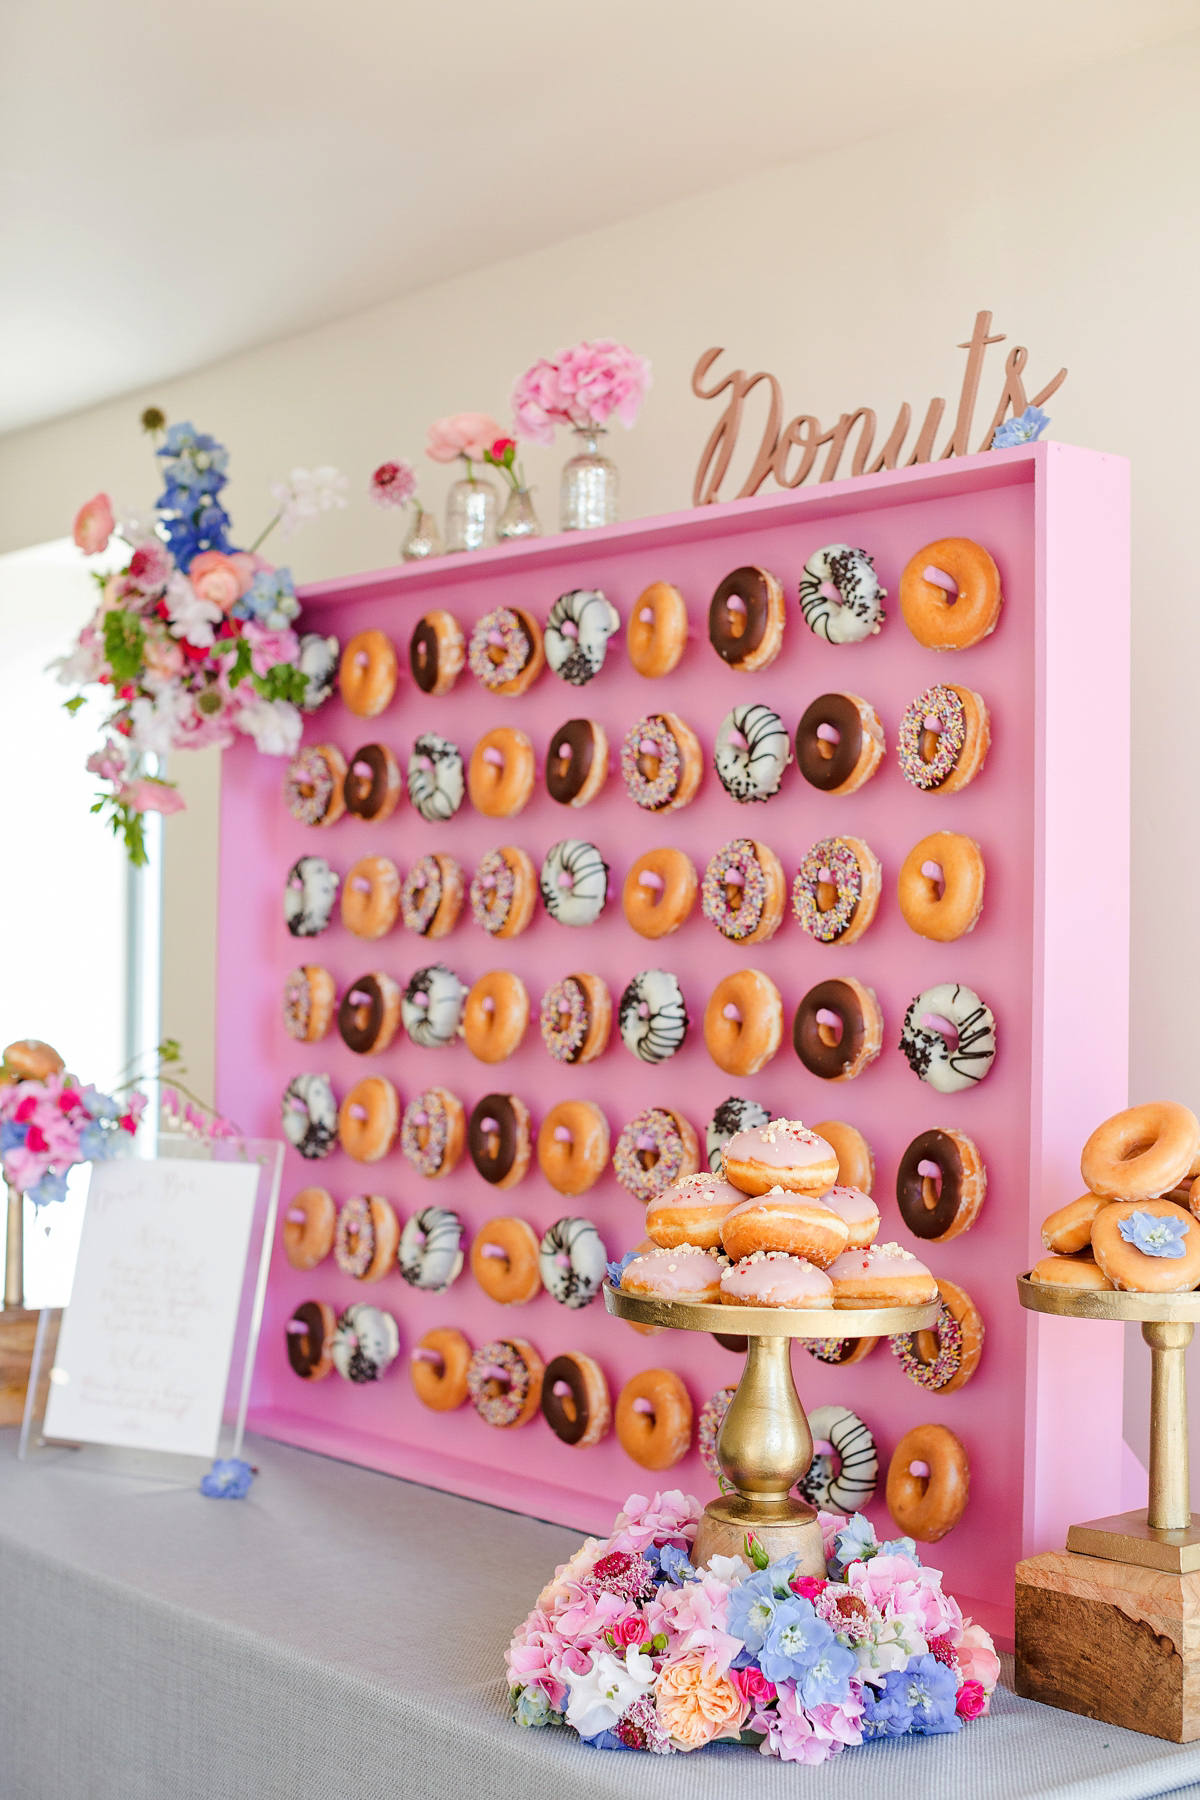 Kalm Kitchen 39 S Donut Wall Liquid Nitrogen Ice Cream Bar And Other Creative Catering Ideas